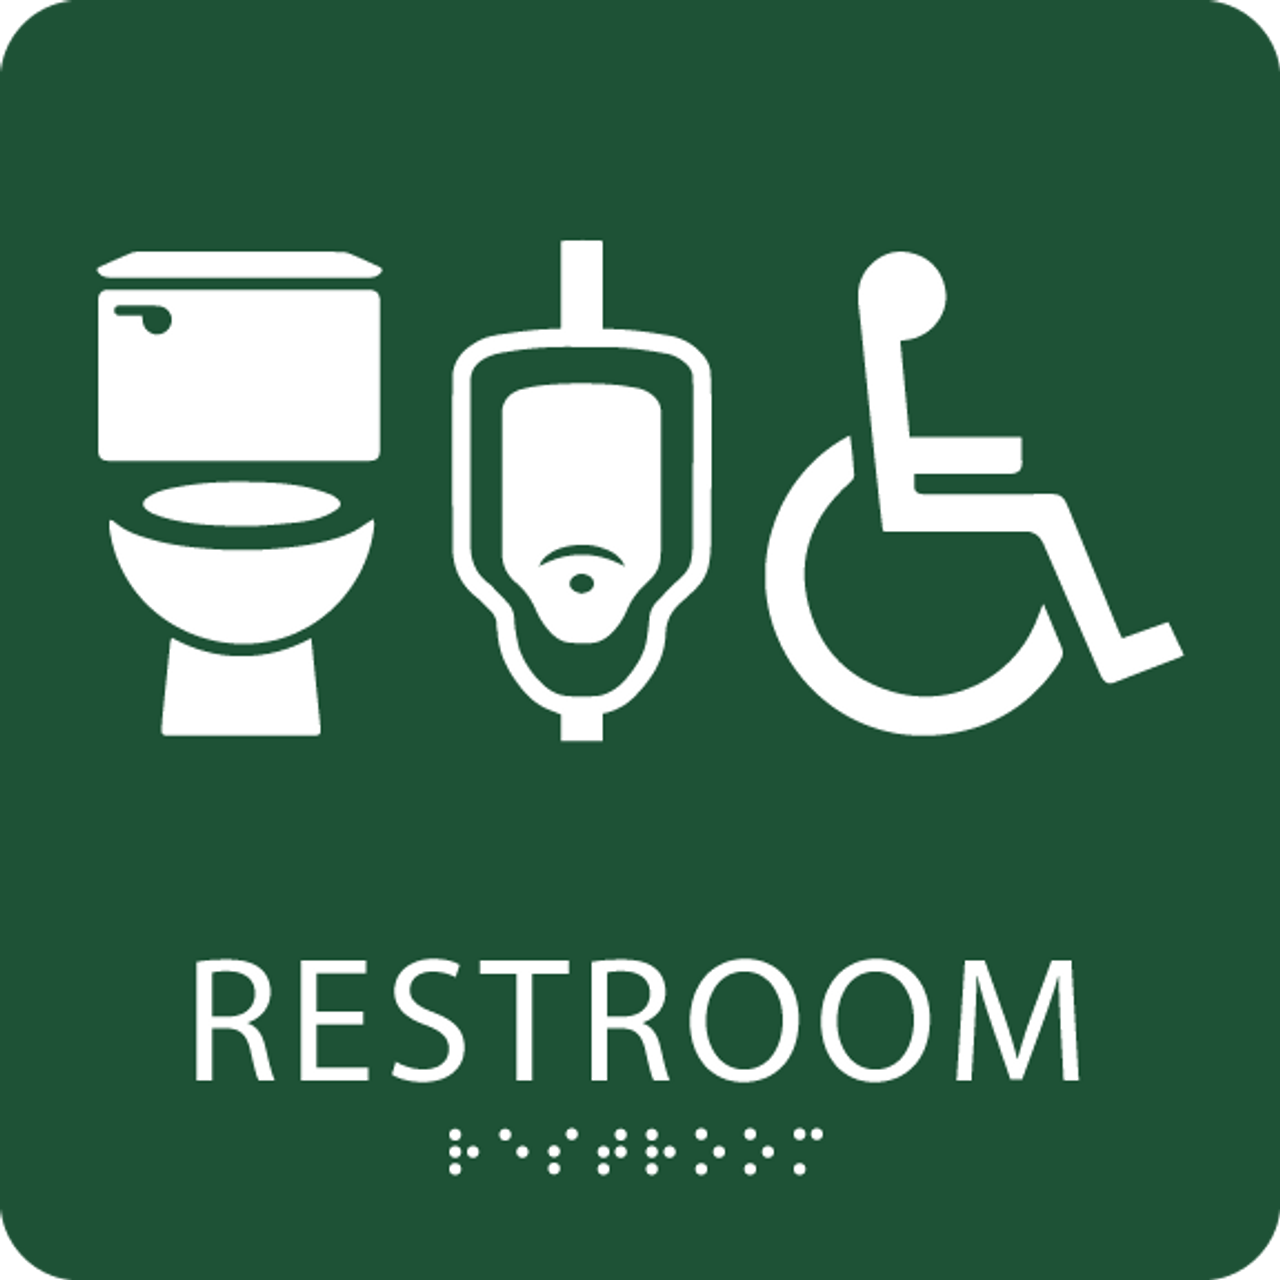 Green unisex restroom sign